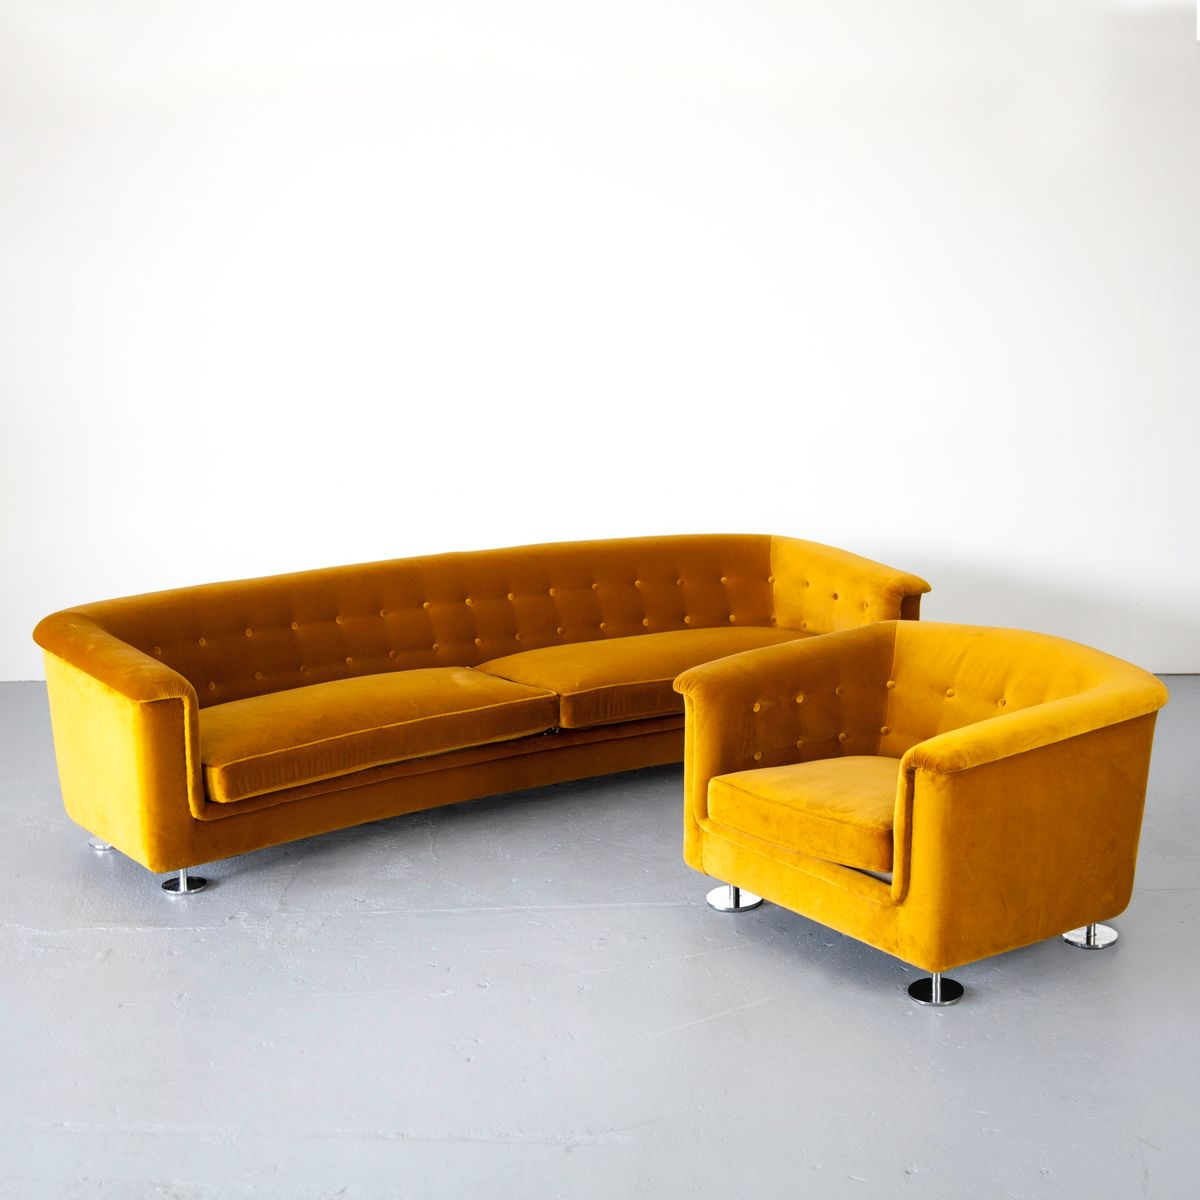 Mustard Living Room Set by Hans Kaufeld, 1970s for sale at Pamono